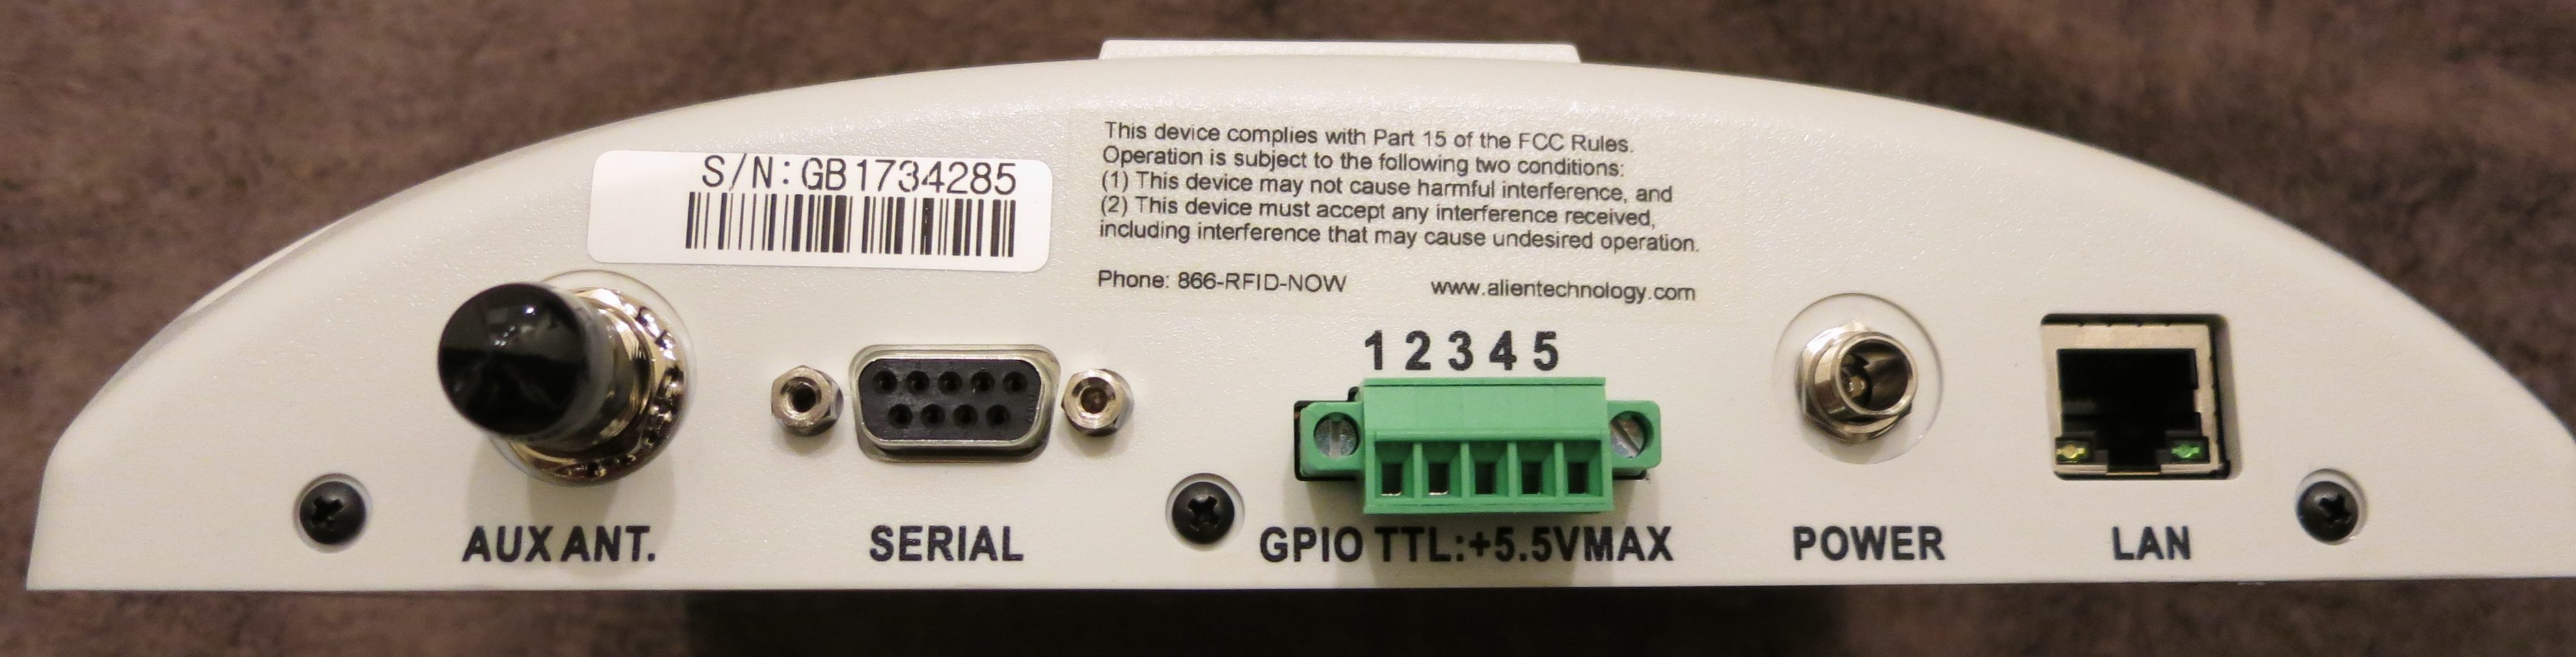 Confidant Mail Secure Email And Gigabyte Attachments Source Http Wwwelectronicscircuitscom Cirdir Data Printerport This Reader Has Ethernet A Serial Port Some General Purpose I O It Can Read On Trigger Input Or An Output When Detects Tag